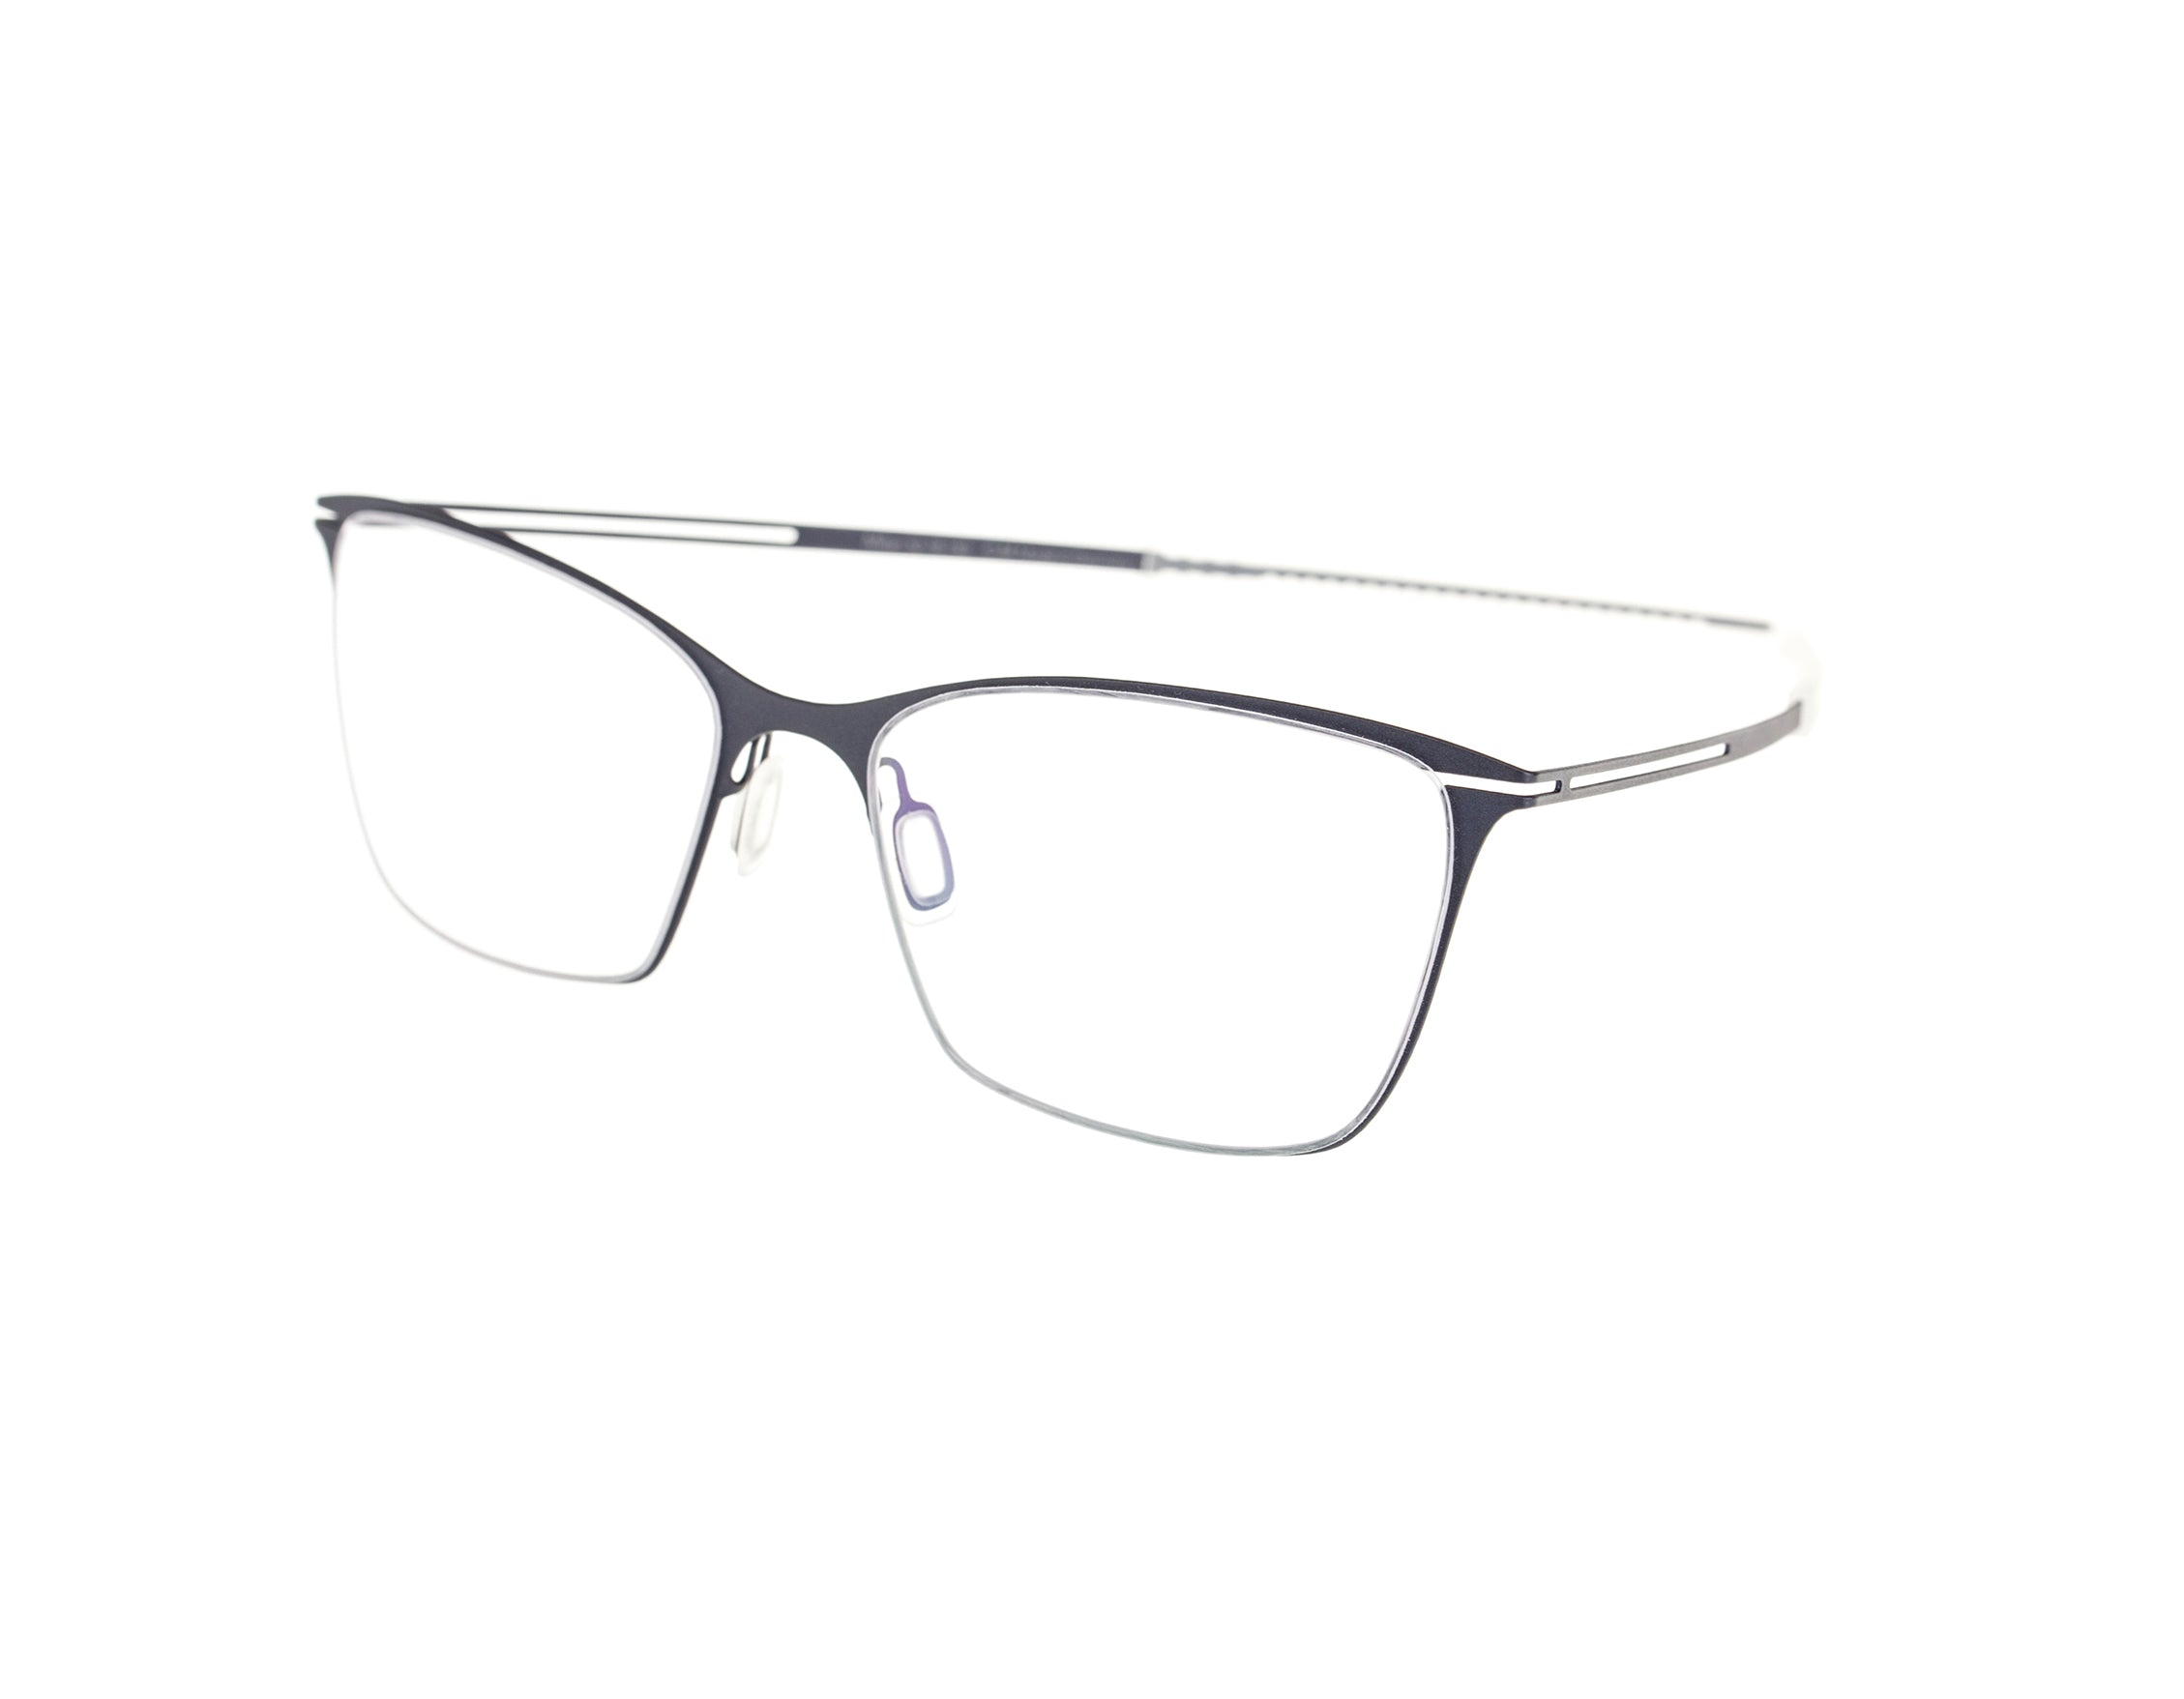 ONE by Thomsen Eyewear -  Milan col. 44